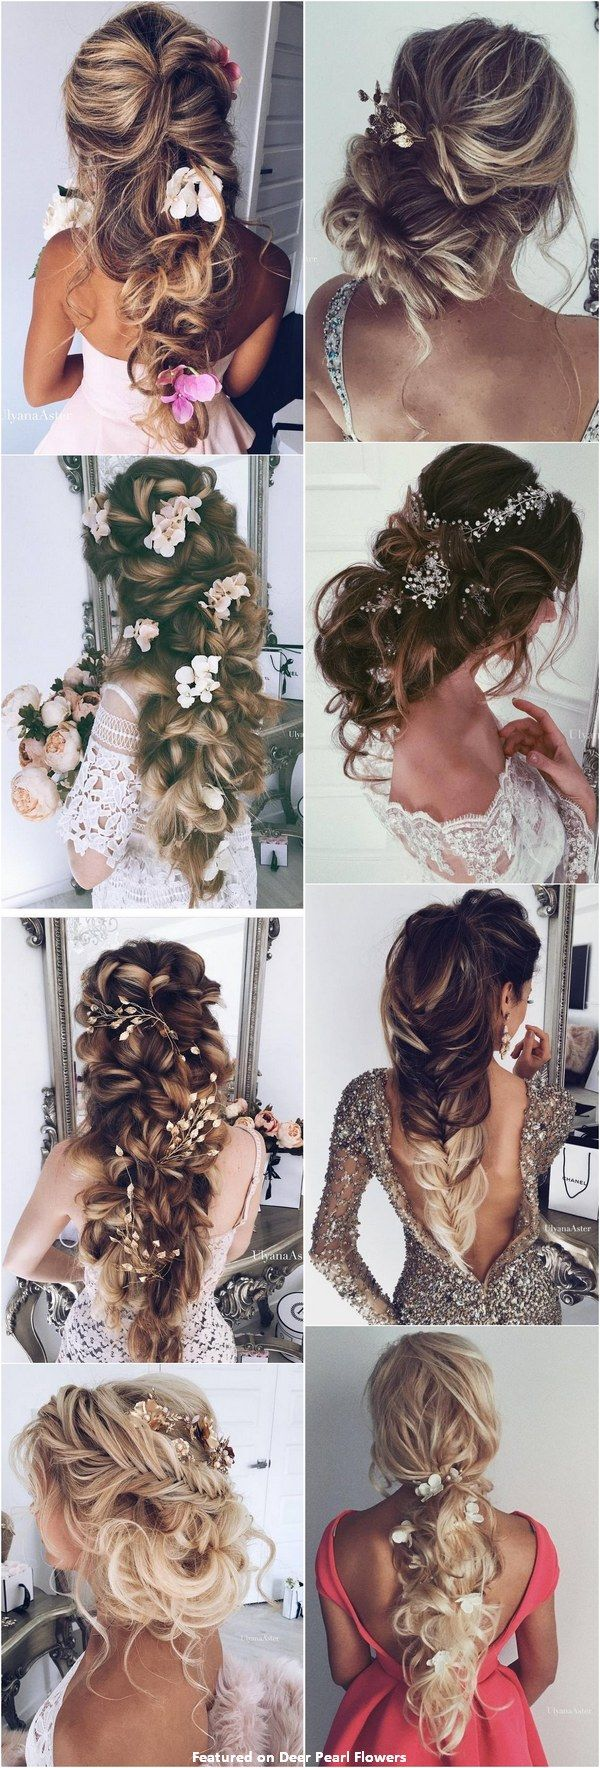 65 New Romantic Long Bridal Wedding Hairstyles to Try / Ulyana Aster